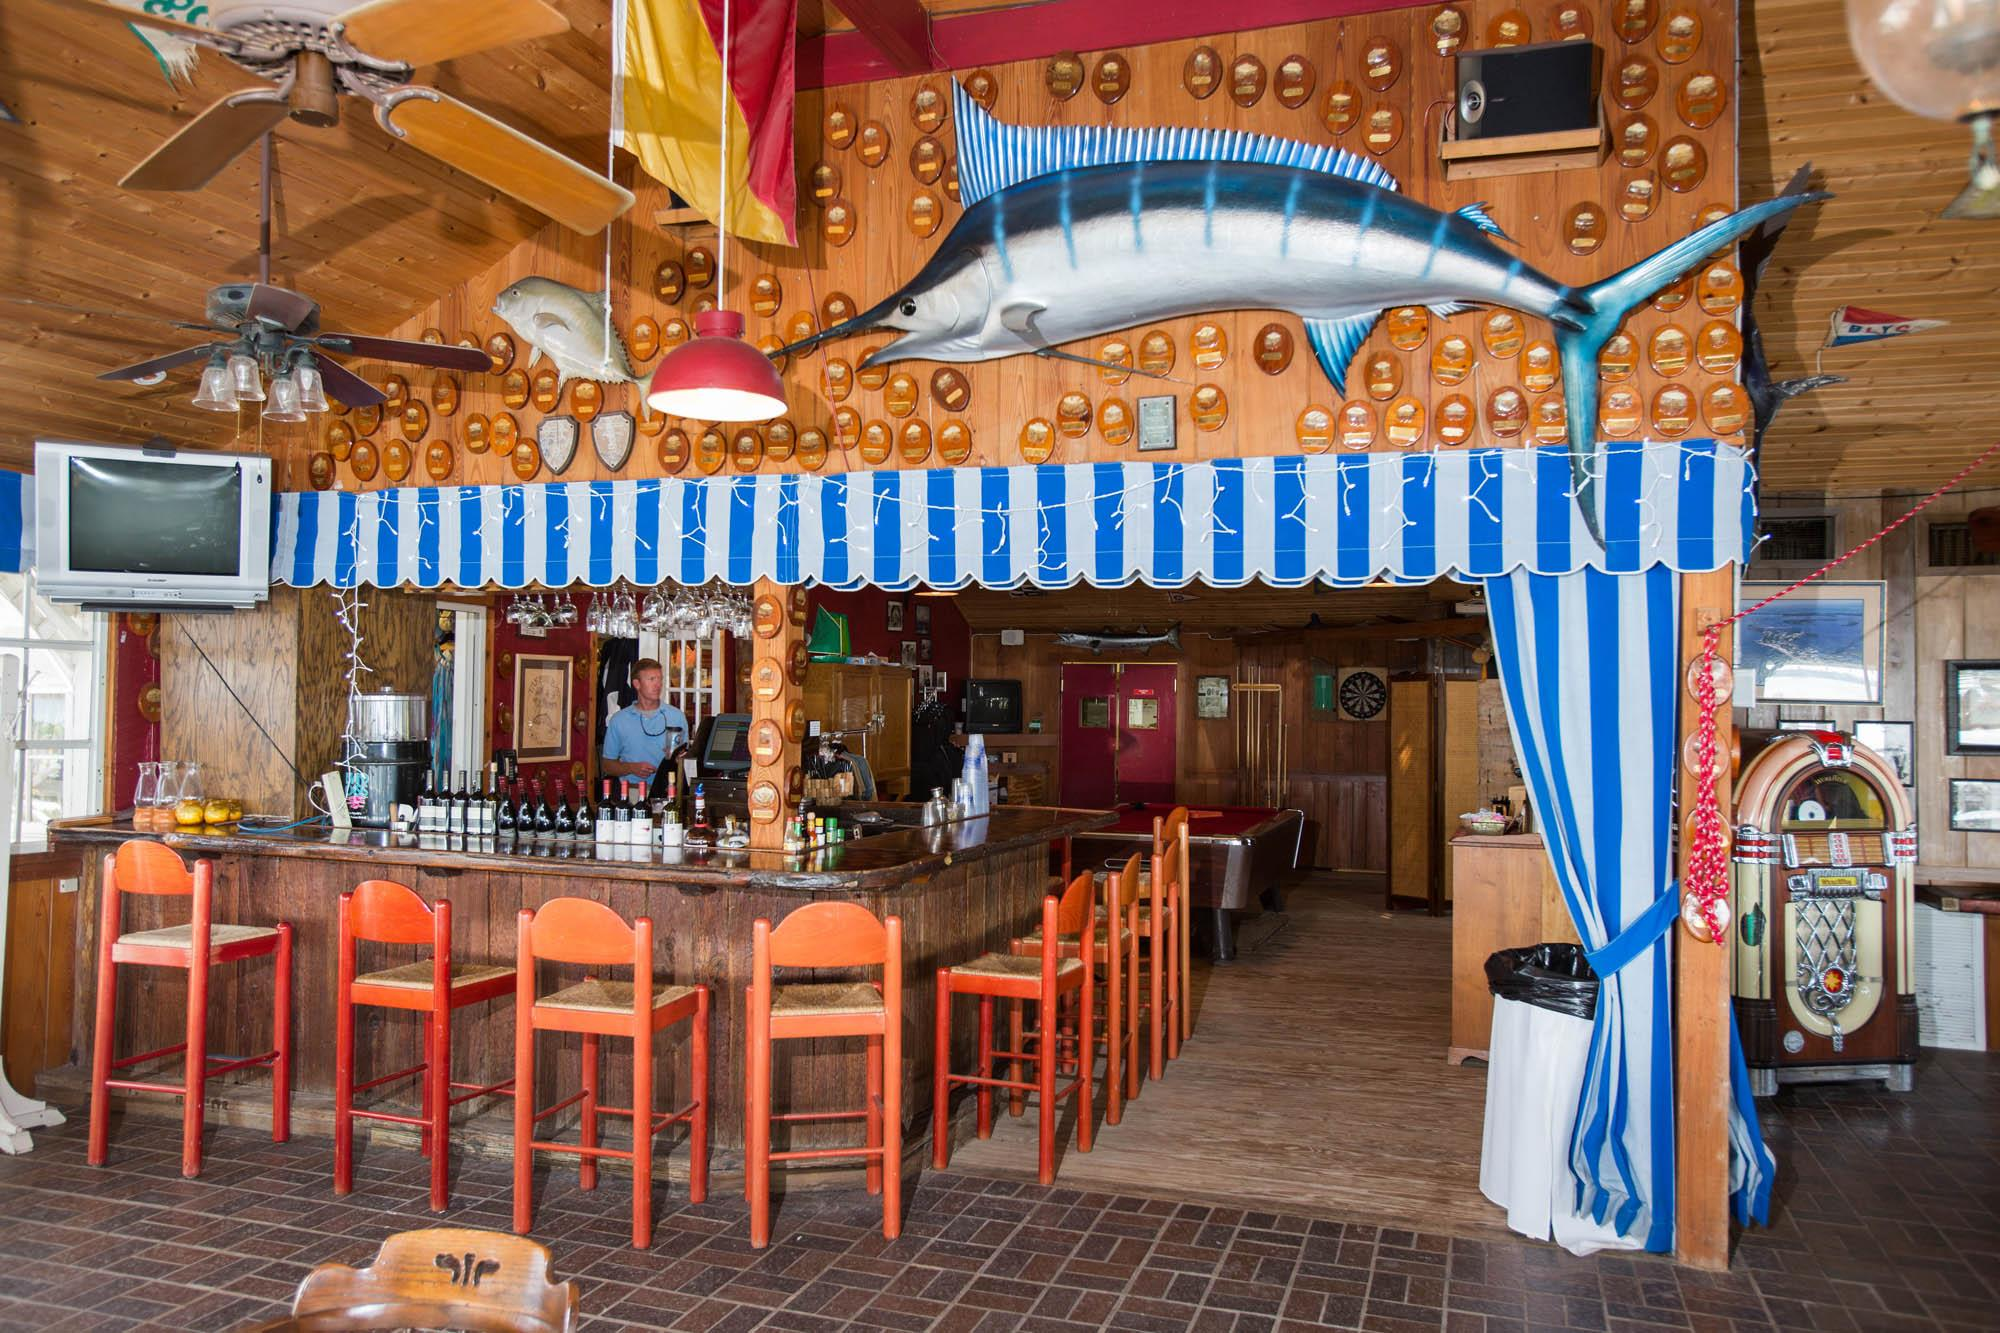 The Tarpon Bar Watering Hole